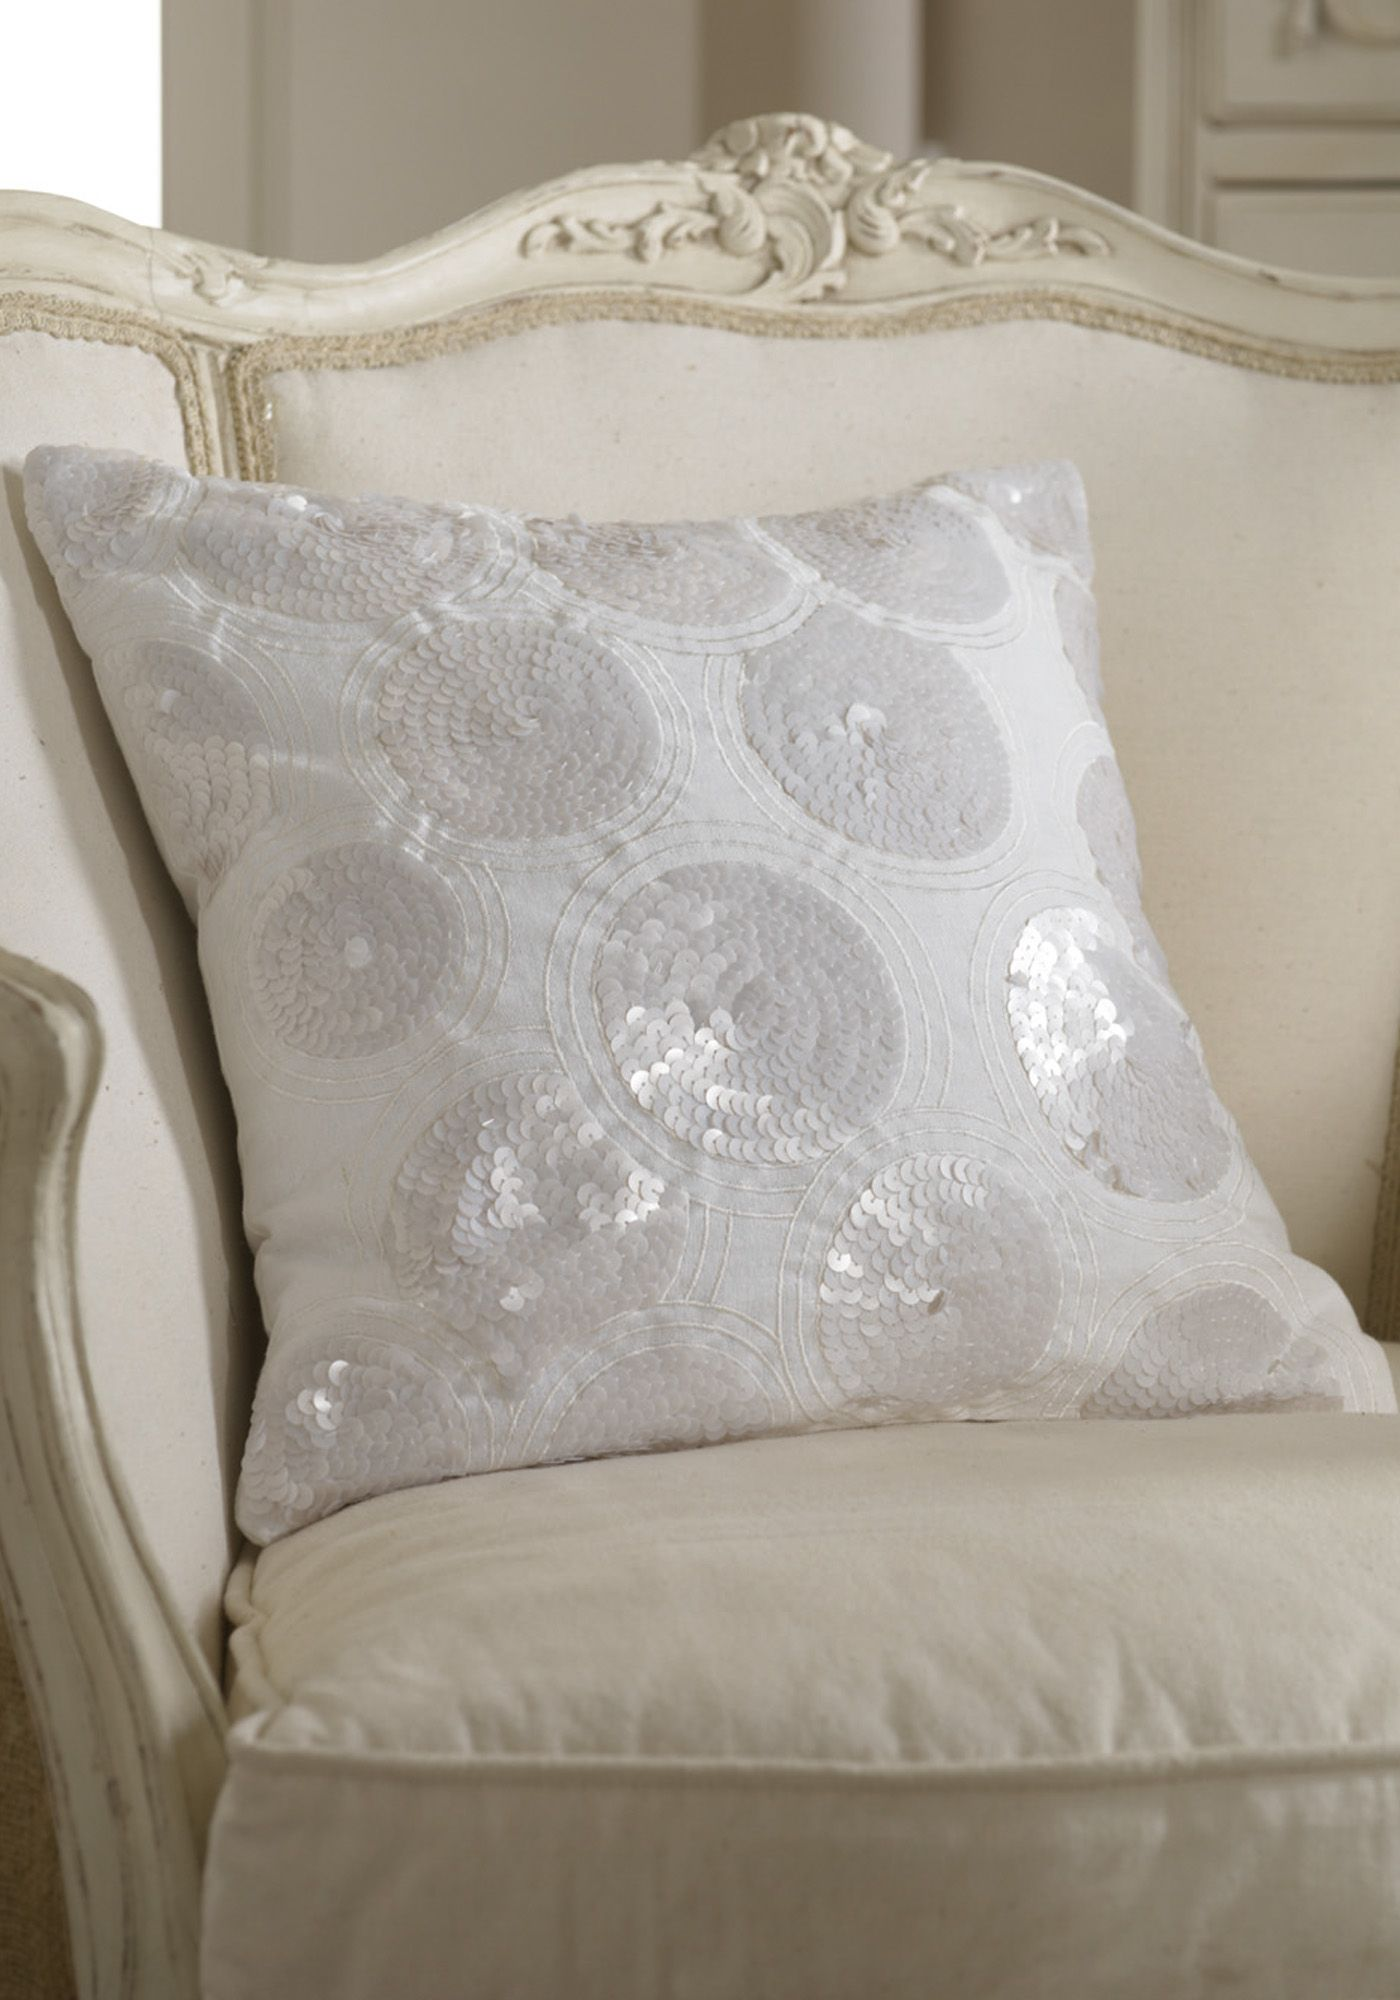 Ethier ivory cushion